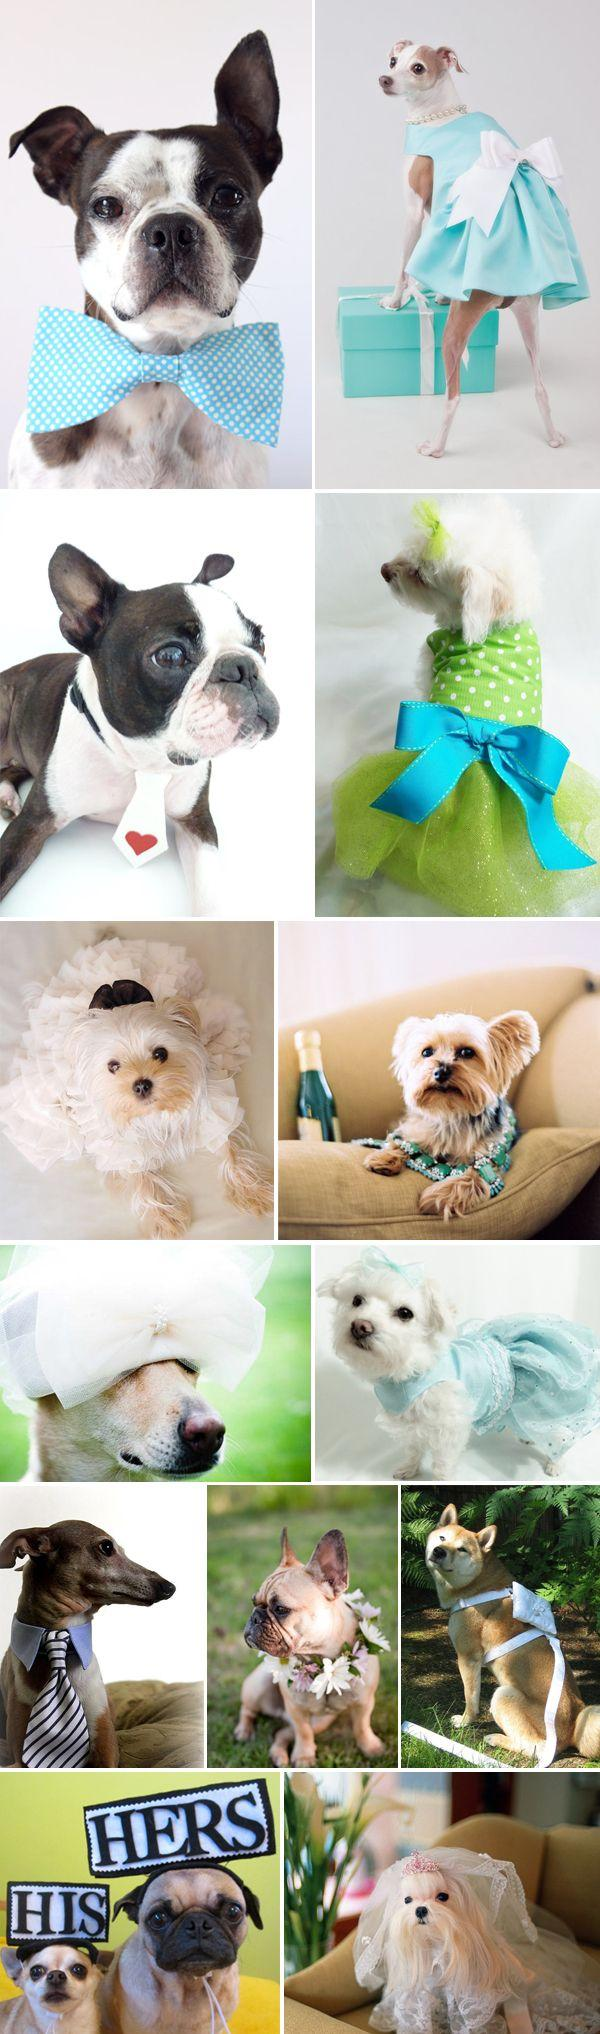 Wedding - Super Cute! Wedding Dogs